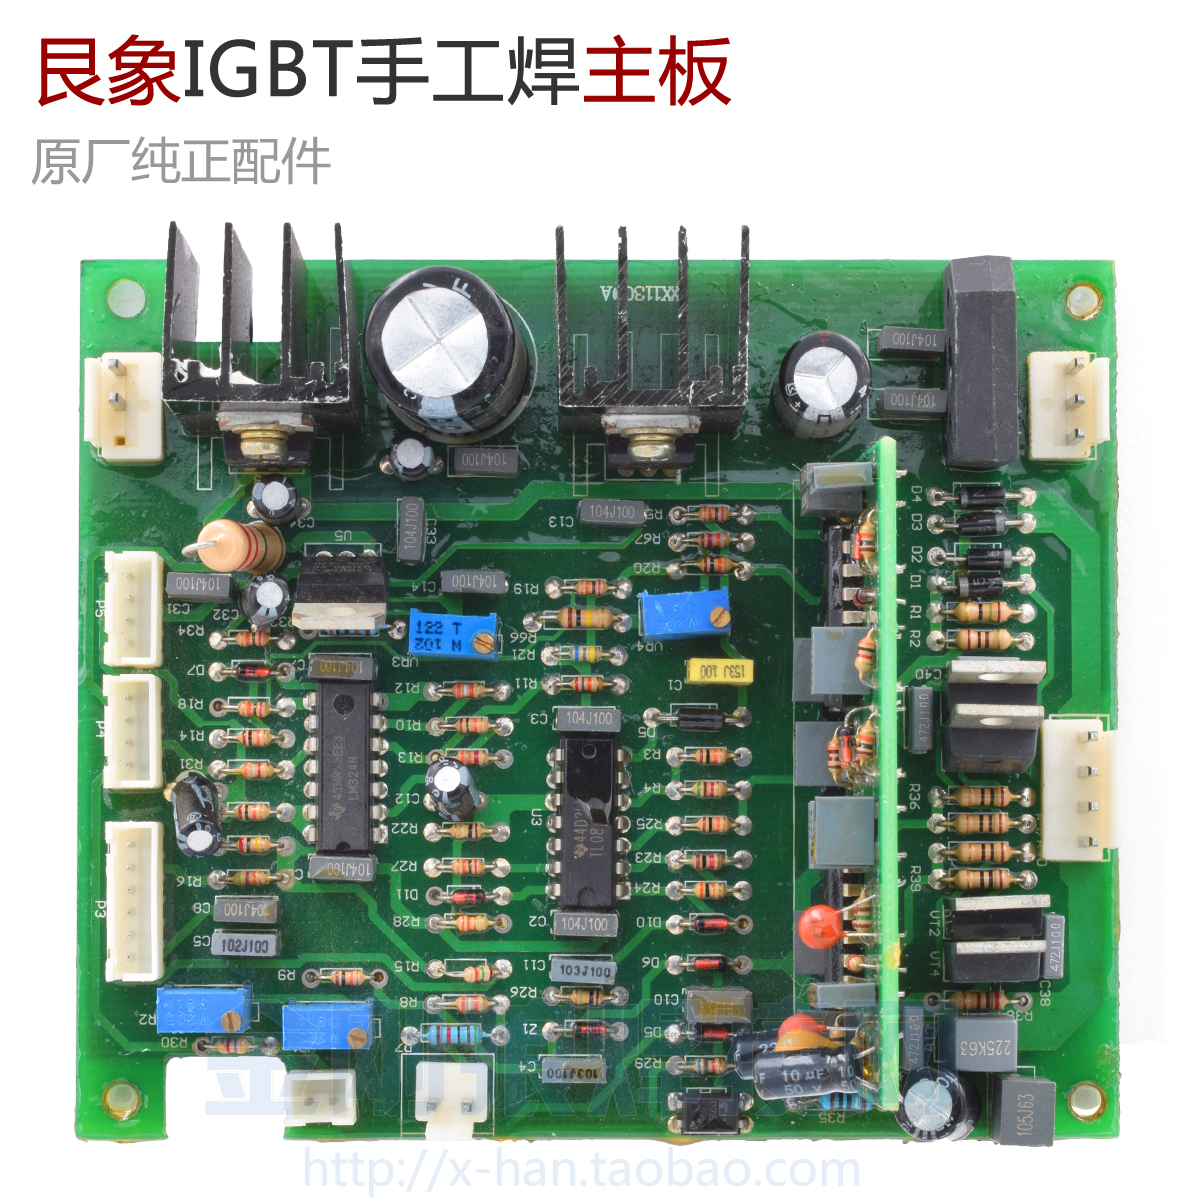 Ydt Like Igbt Manual Welding Machine Repair Accessories Motherboard Electronic Circuit Contol Boards Control Board In Arc Welders From Tools On Alibaba Group